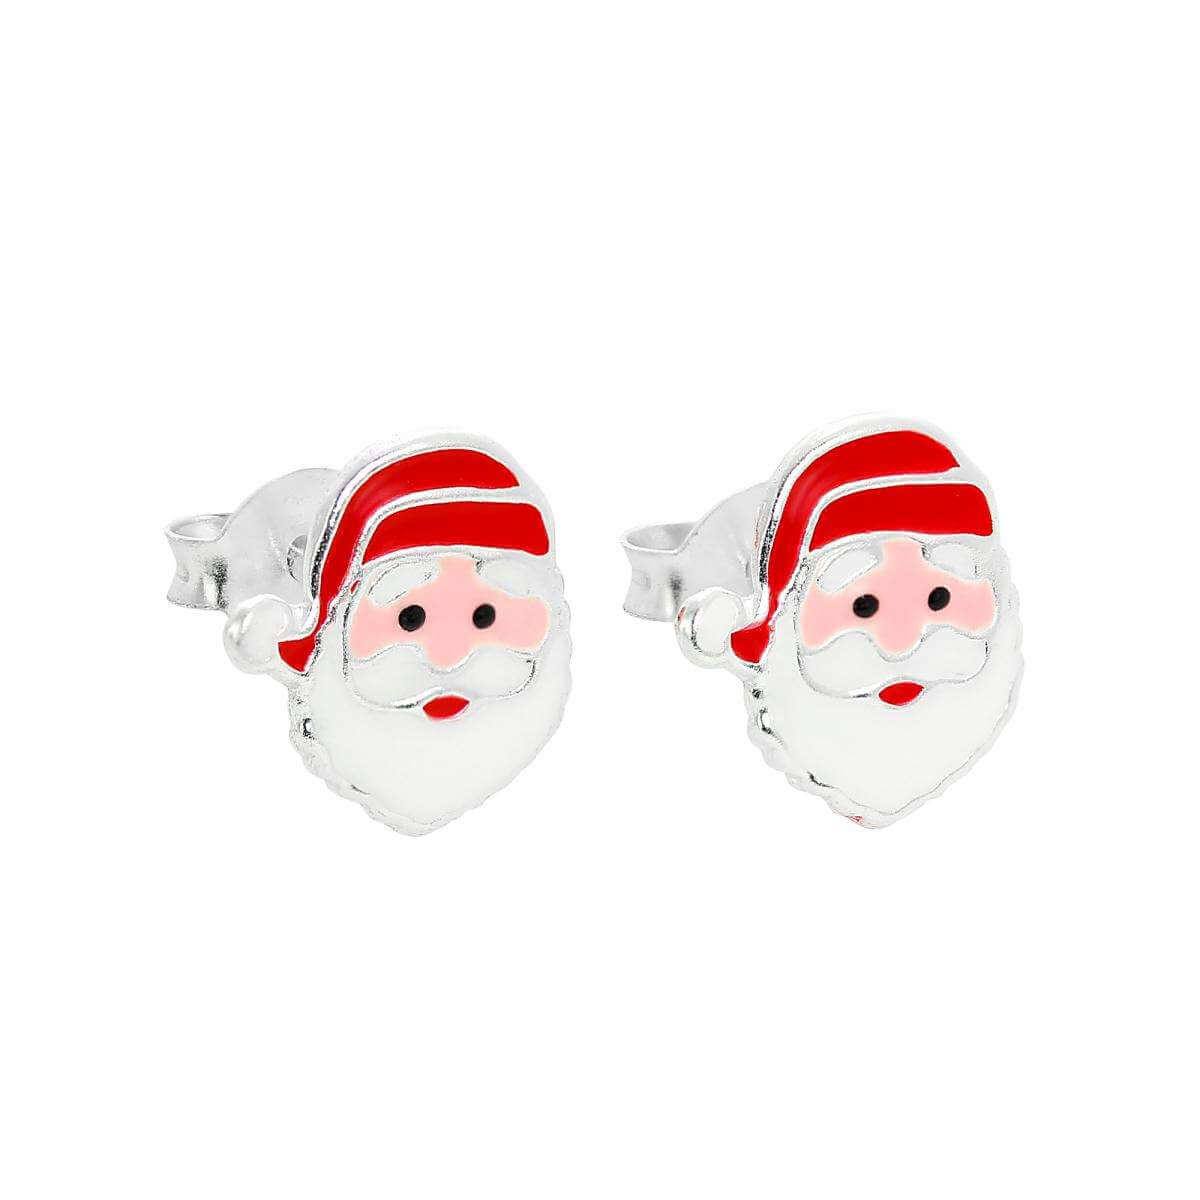 Cute Sterling Silver & Enamel Santa Claus Christmas Stud Earrings